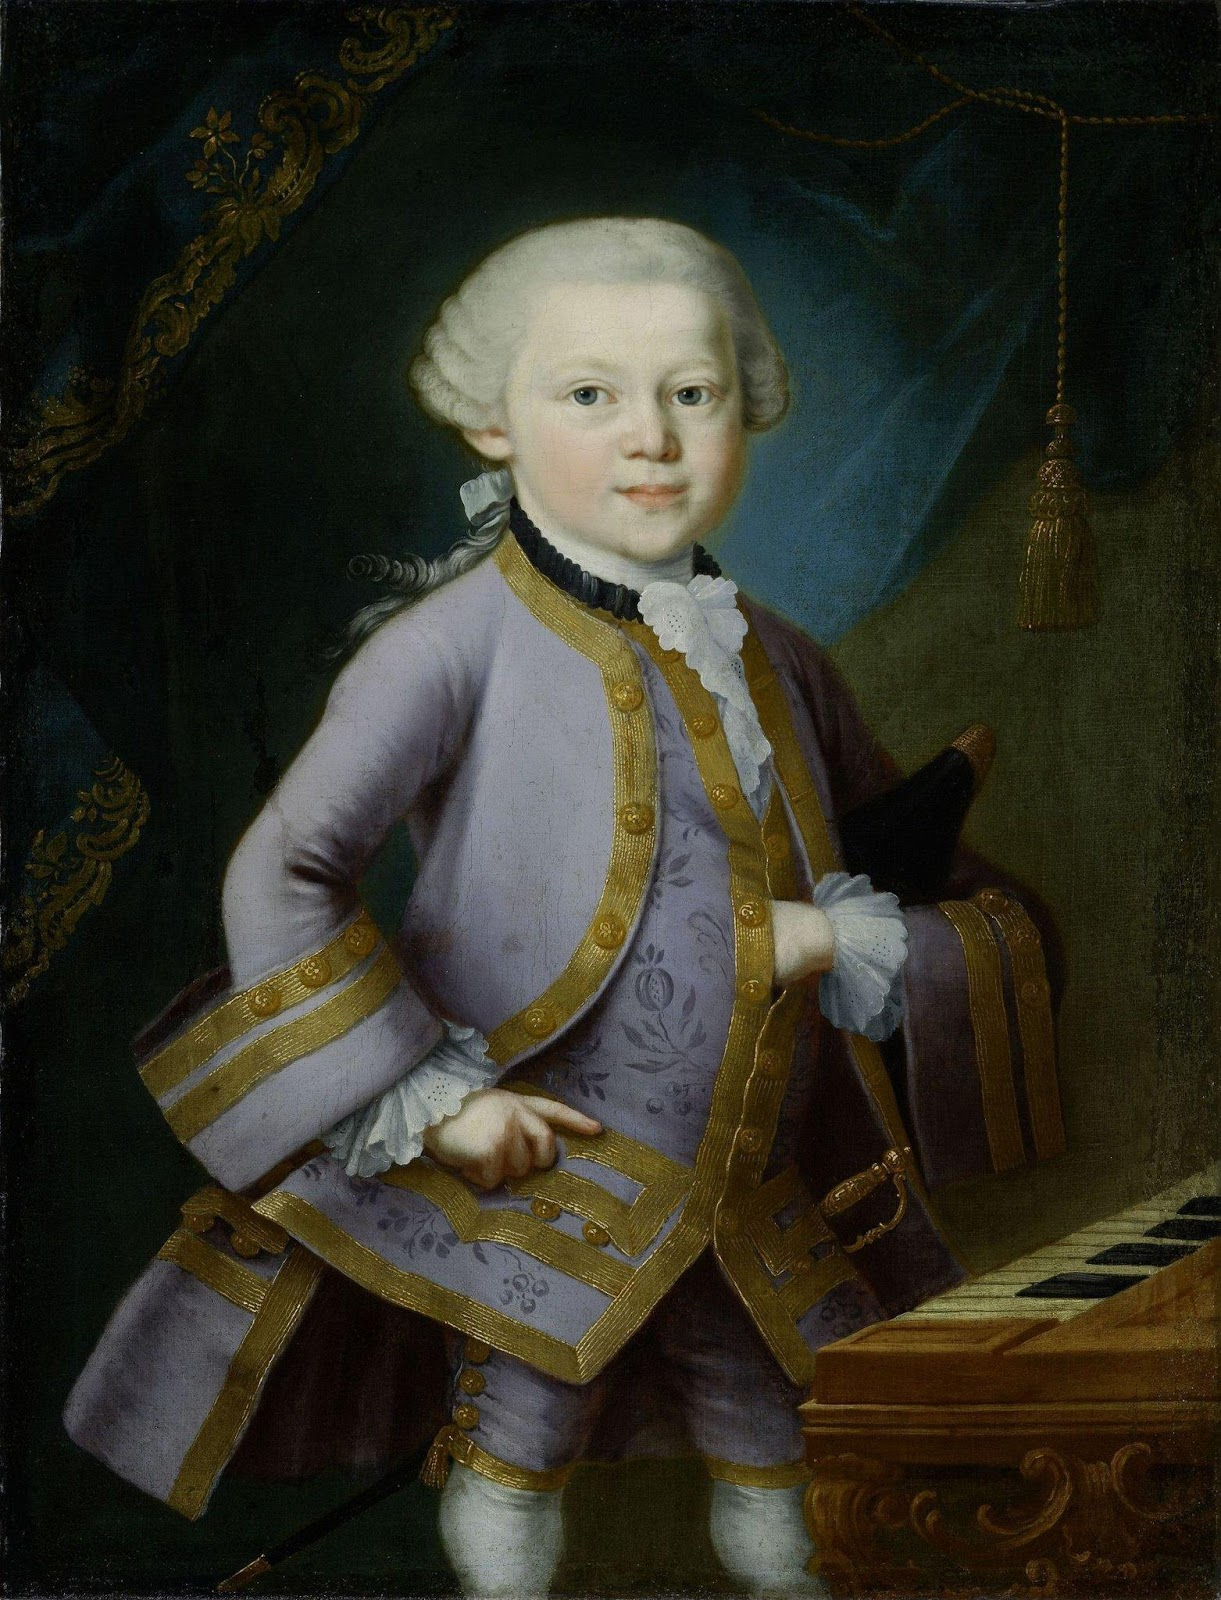 IN REVIEW: the young Wolfgang Amadeus Mozart, as painted by Pietro Antonio Lorenzoni, circa 1763 [Image © by Mozarteaum Foundation]